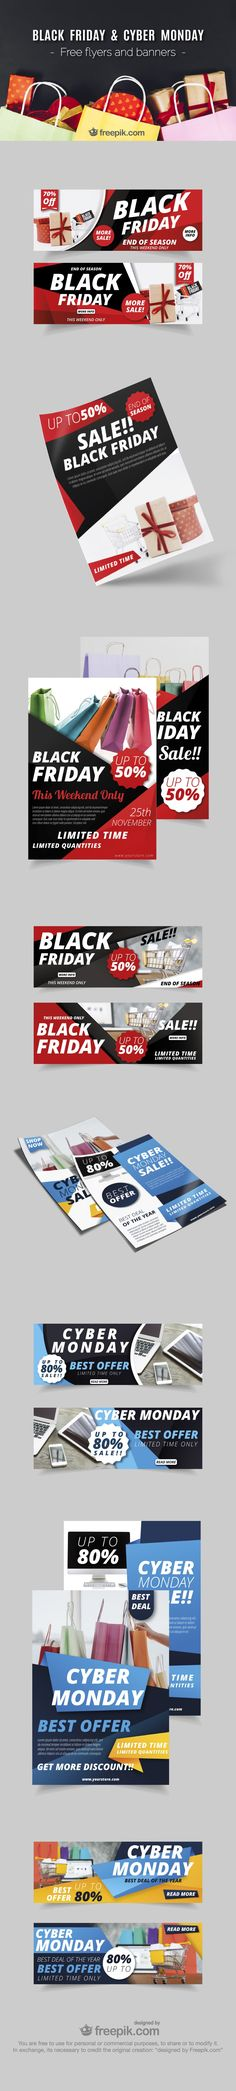 Black Friday Flyers and websites banners